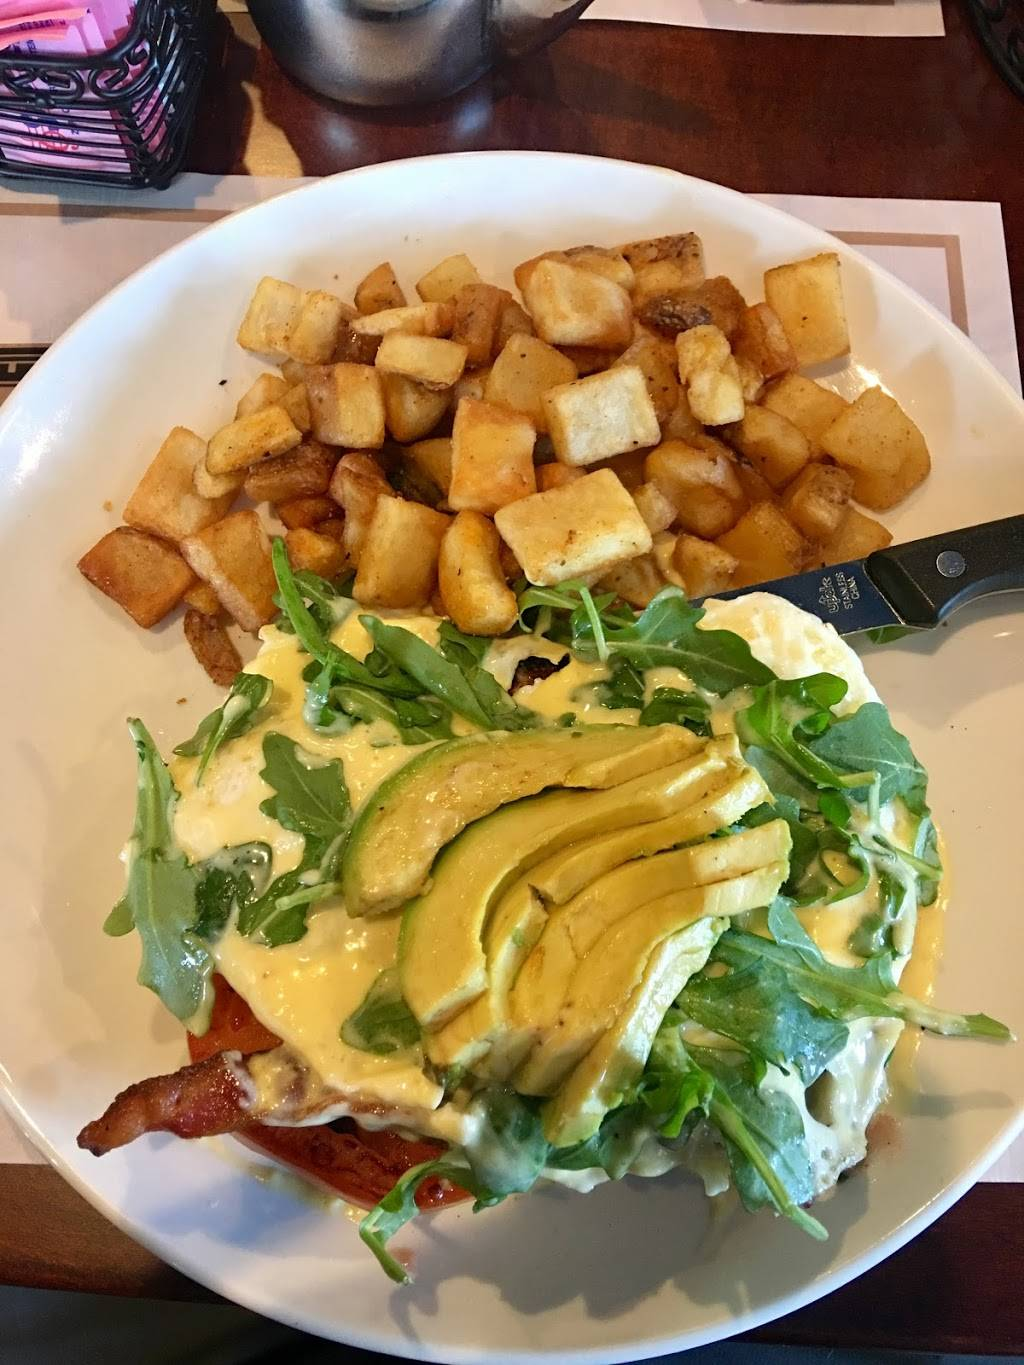 Brownstones Coffee   restaurant   361 Larkfield Rd, East Northport, NY 11731, USA   6314868897 OR +1 631-486-8897